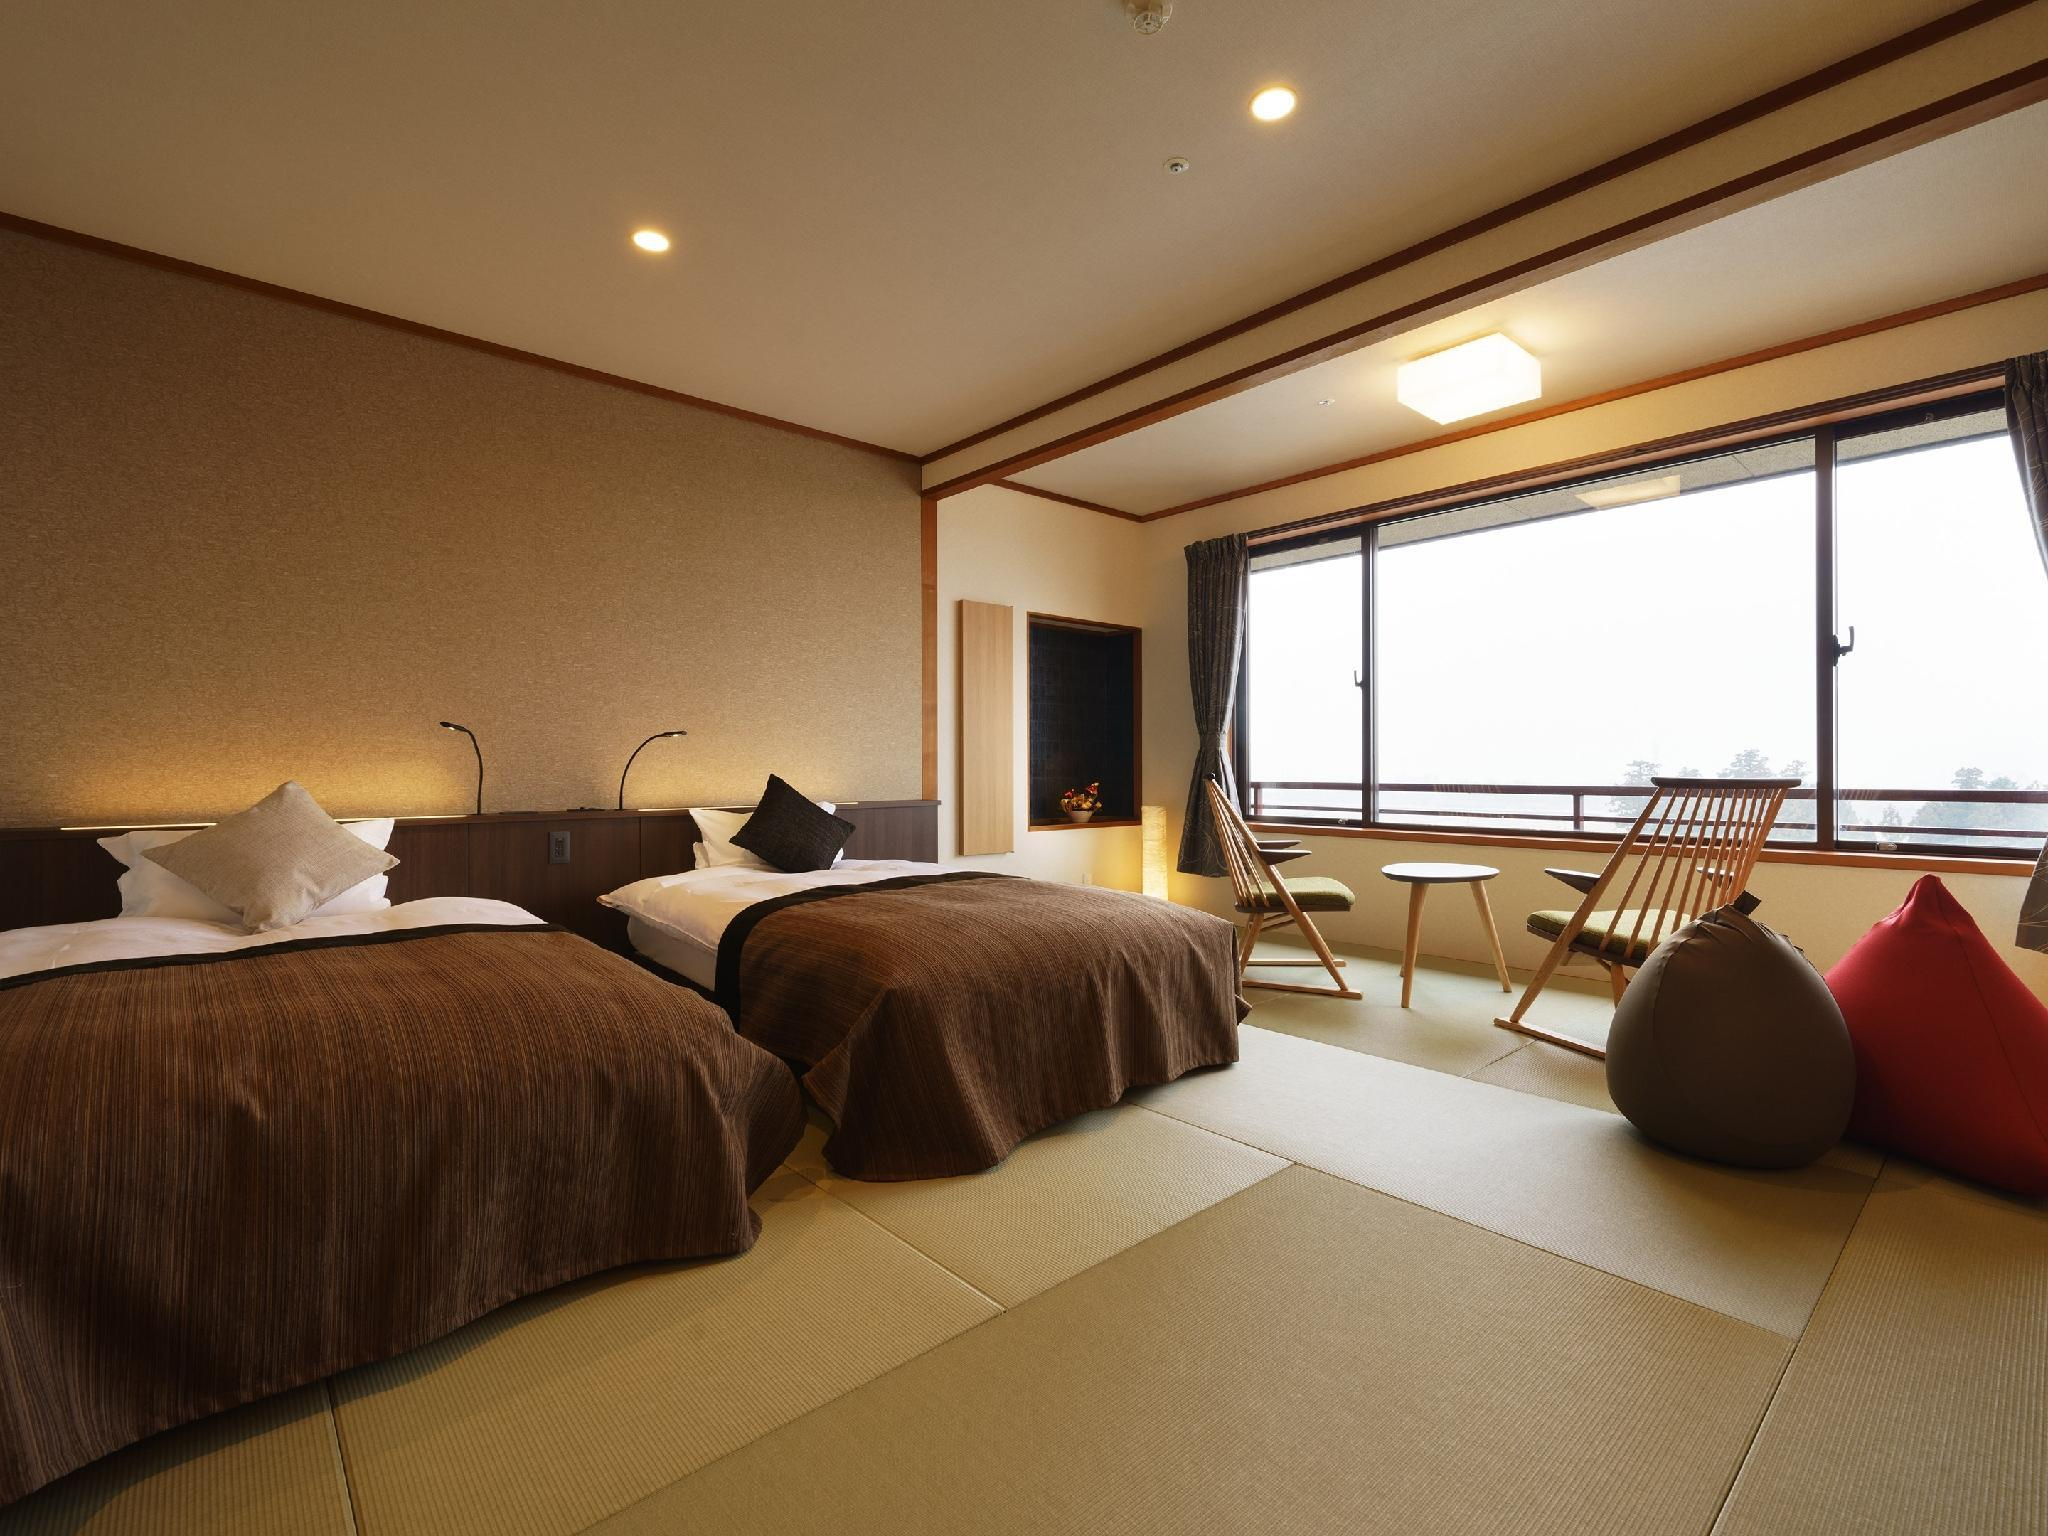 Japanese-style Room (2 Japanese Beds)